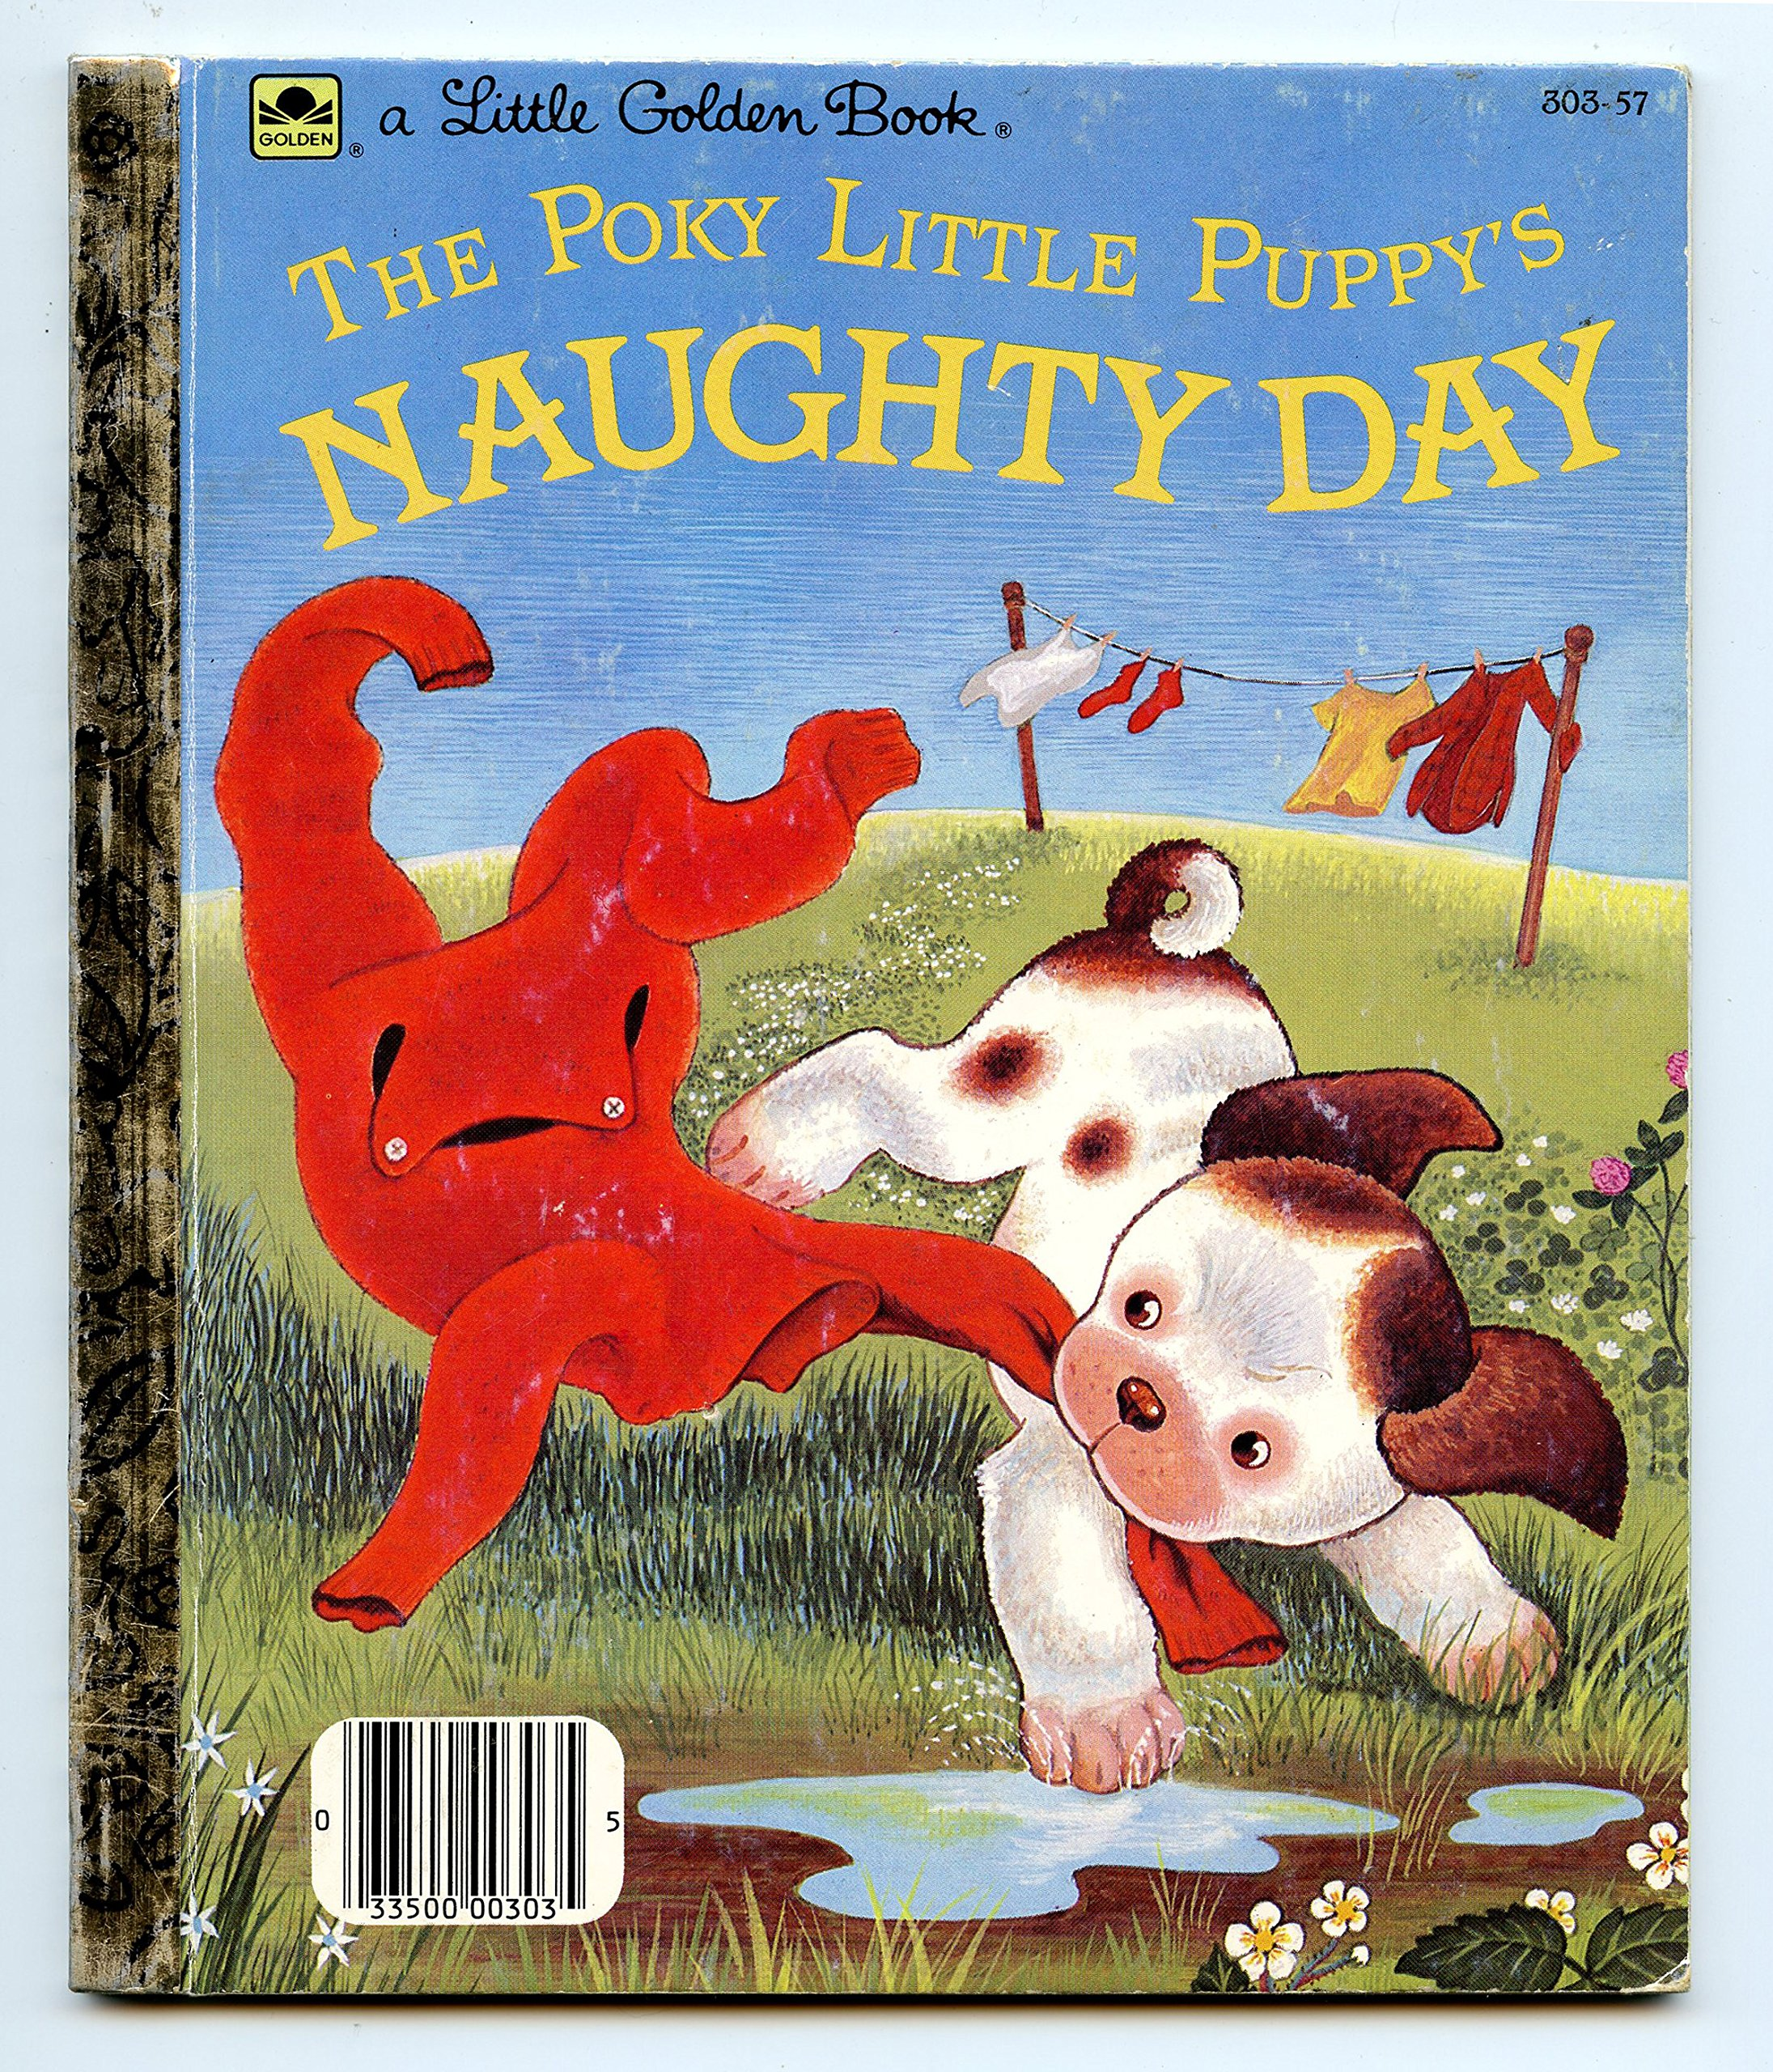 Iffythe Poky Little Puppys Naughty Day Jean Chandler Amazoncom